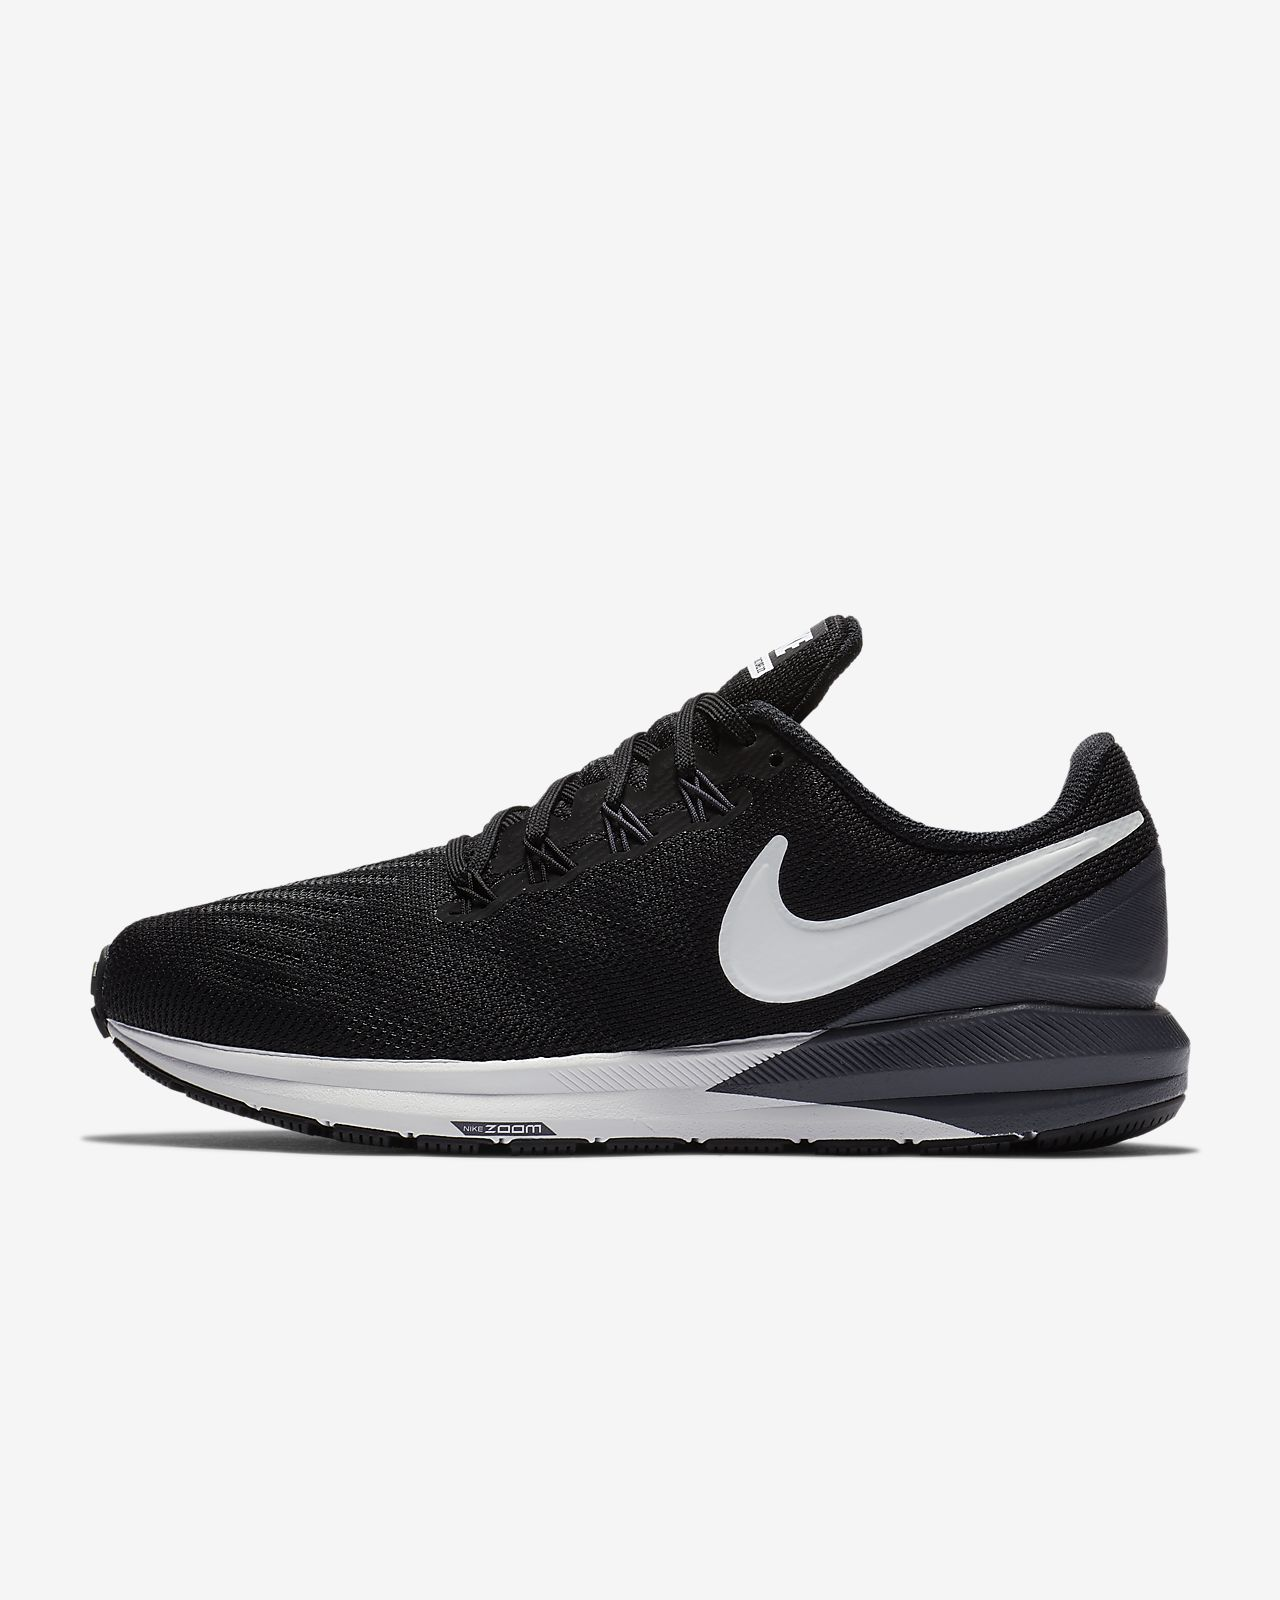 Nike Air Zoom Structure 22 Women's Running Shoe (Wide)